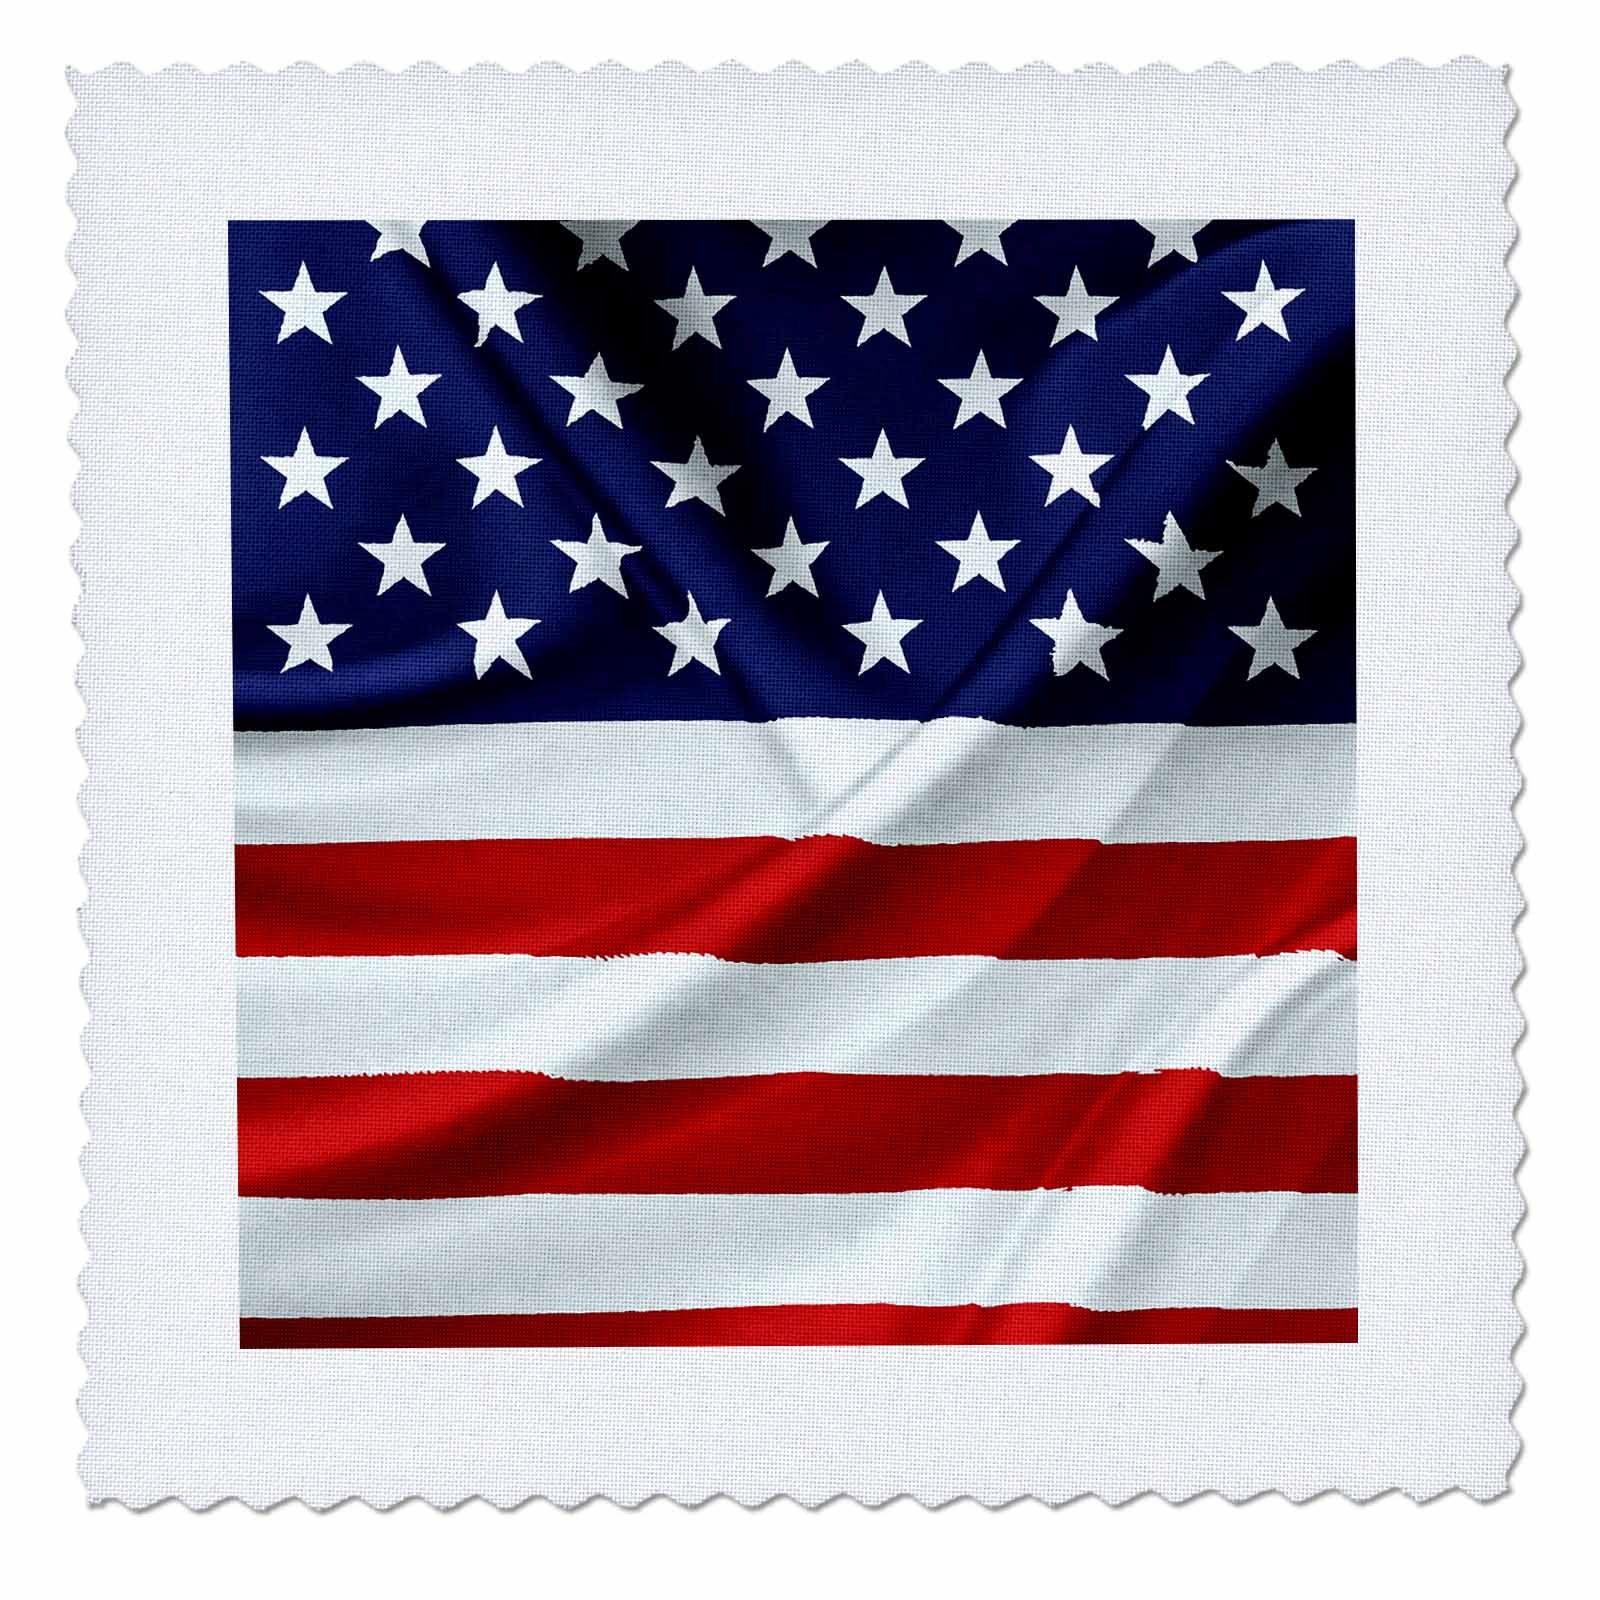 3dRose Alexis Design - America - Flag of the United States Of America. Stars on top - 20x20 inch quilt square (qs_270542_8)